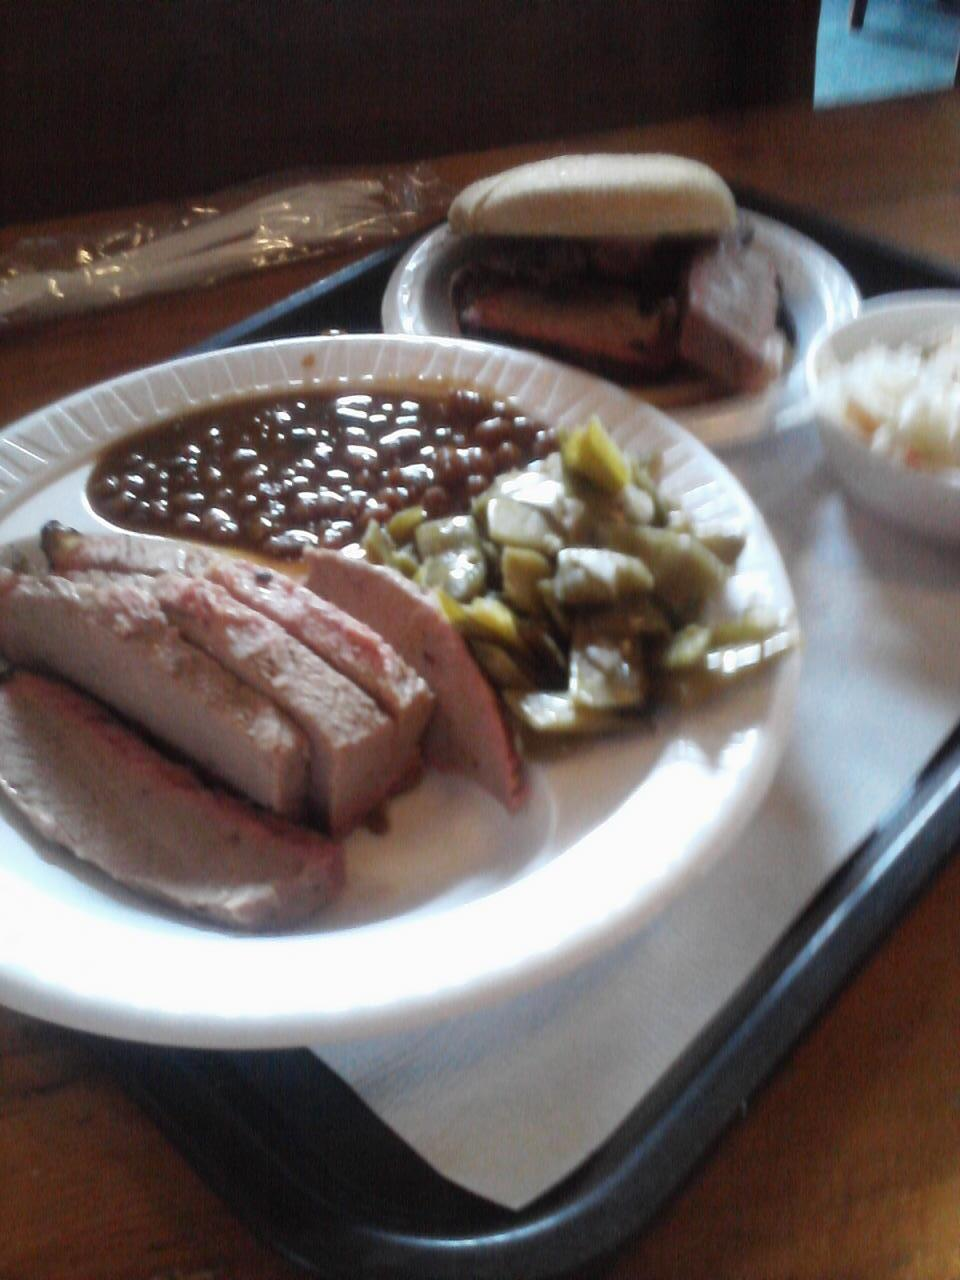 Texas beef brisket at @jacksbarbque in Nashville yesterday. Good stuff. http://t.co/PyF10exaIr